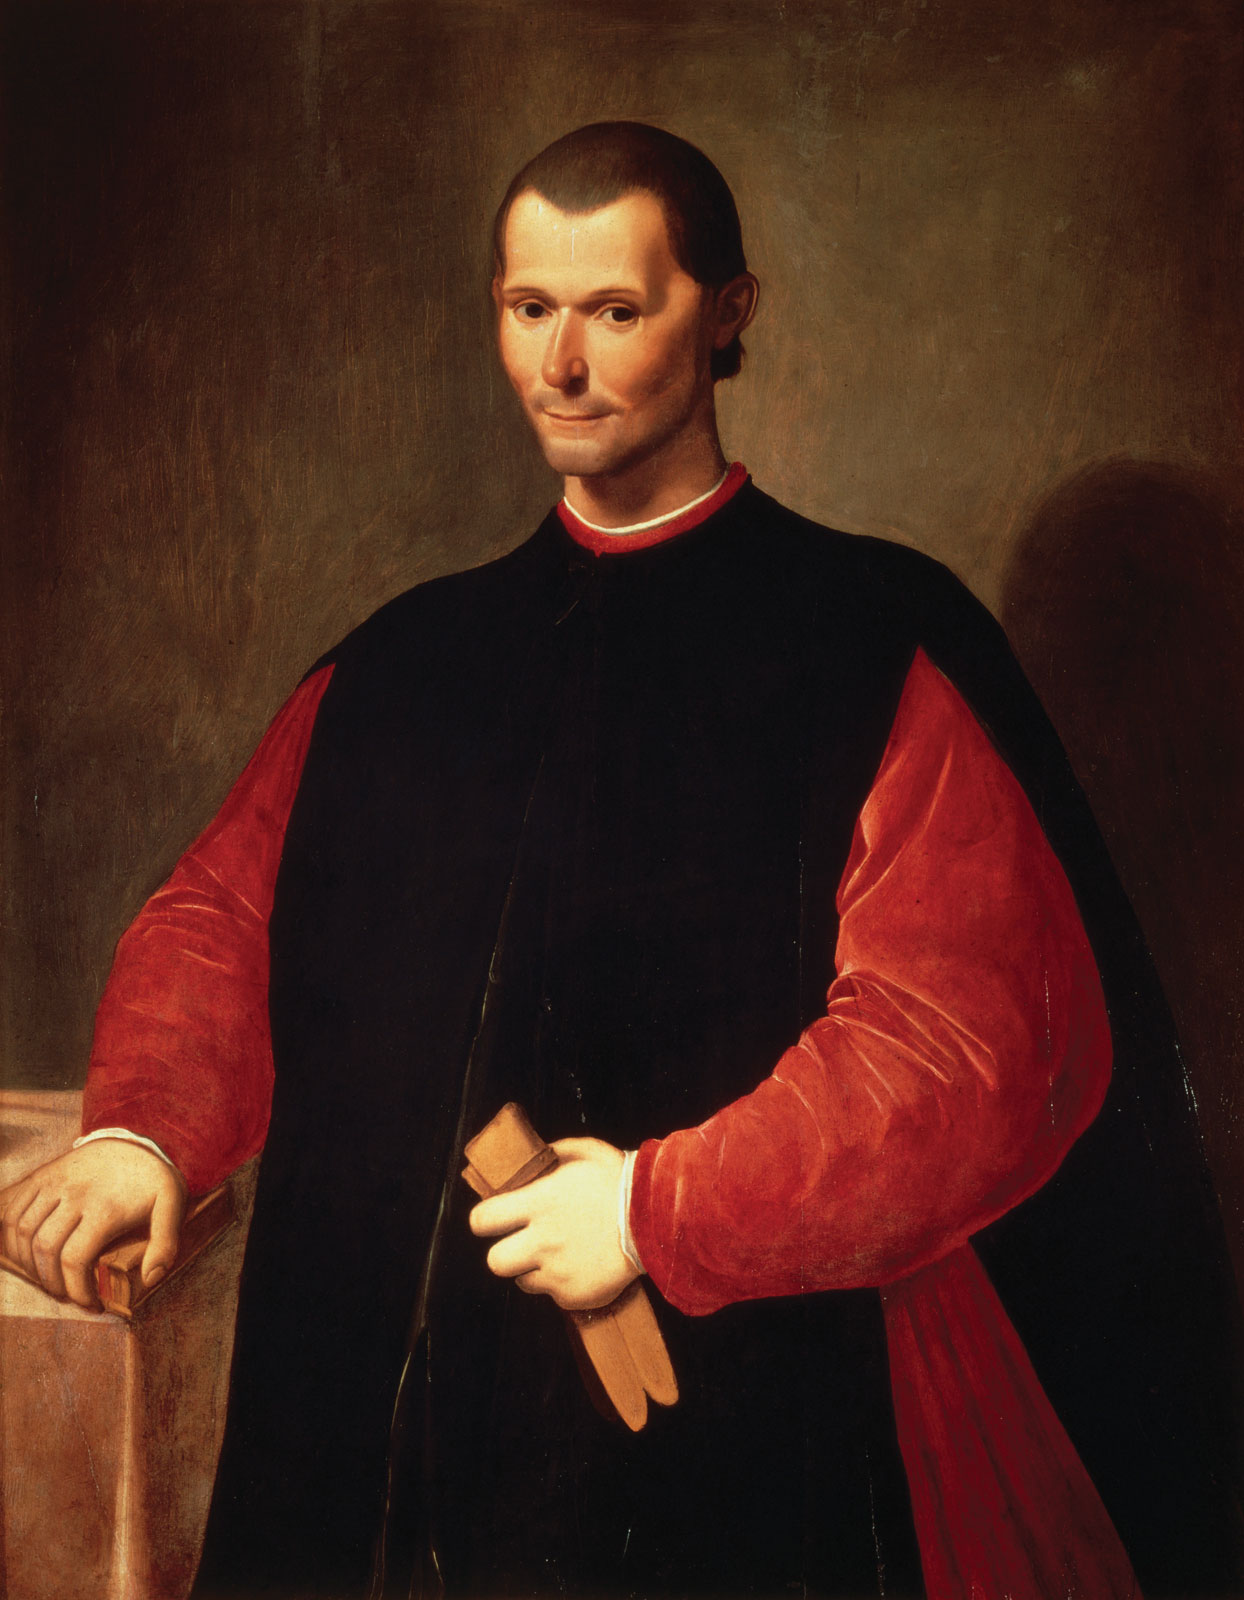 Even Niccolò Machiavelli would call bullsh*t on America's twisted firearms cult.